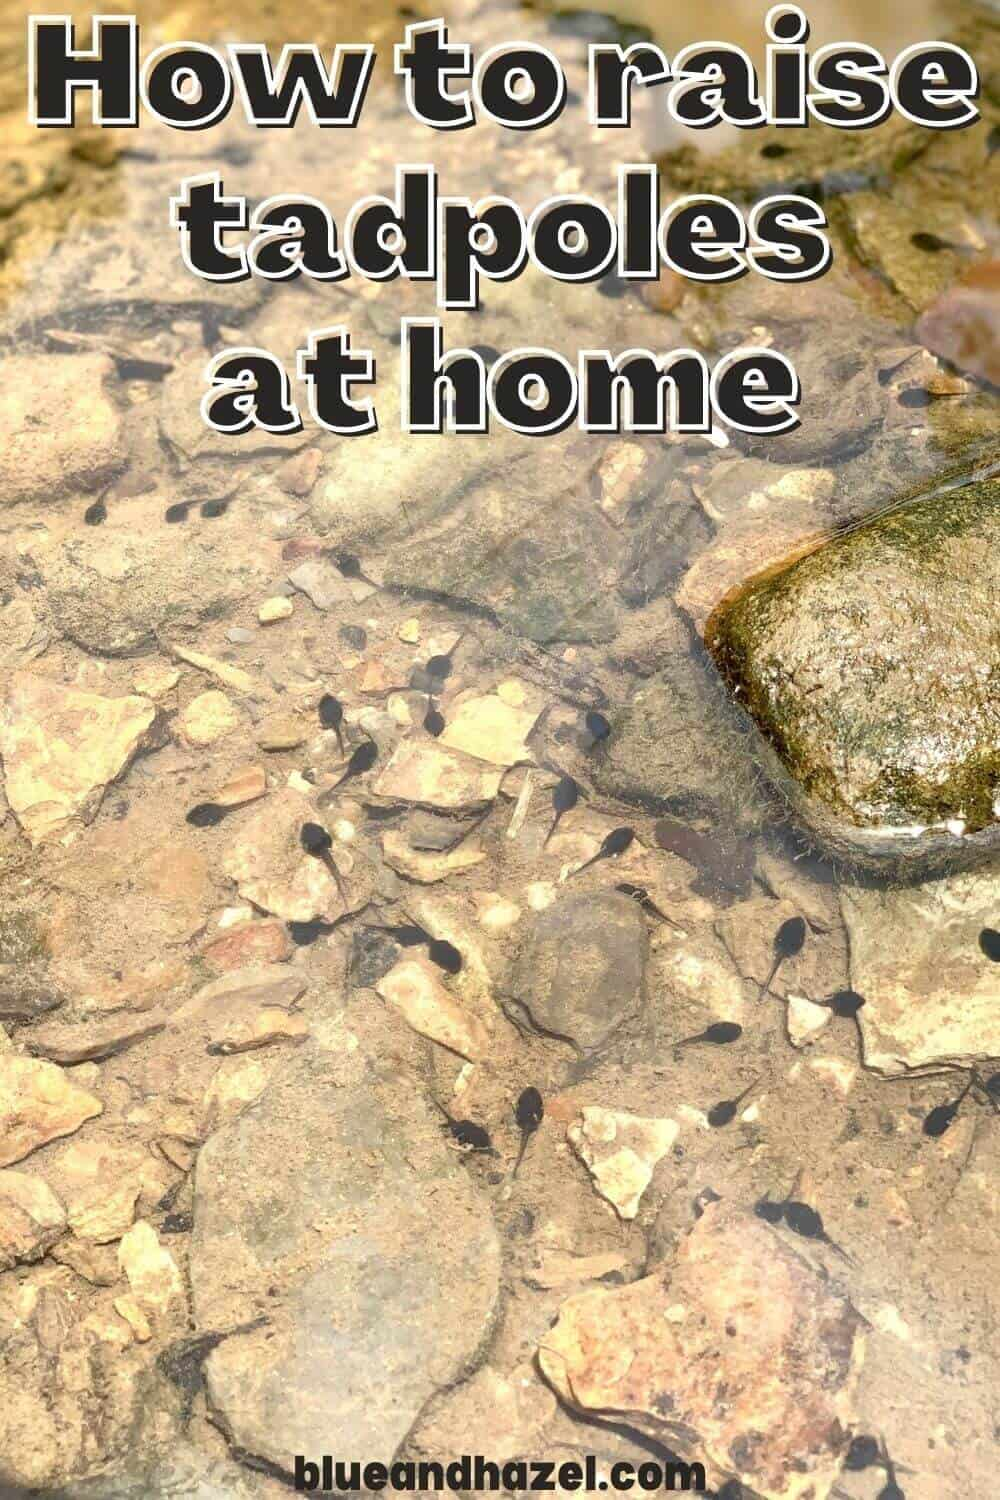 """baby tadpoles in a creek bed with text on photo that says """"How to raise tadpoles at home"""""""